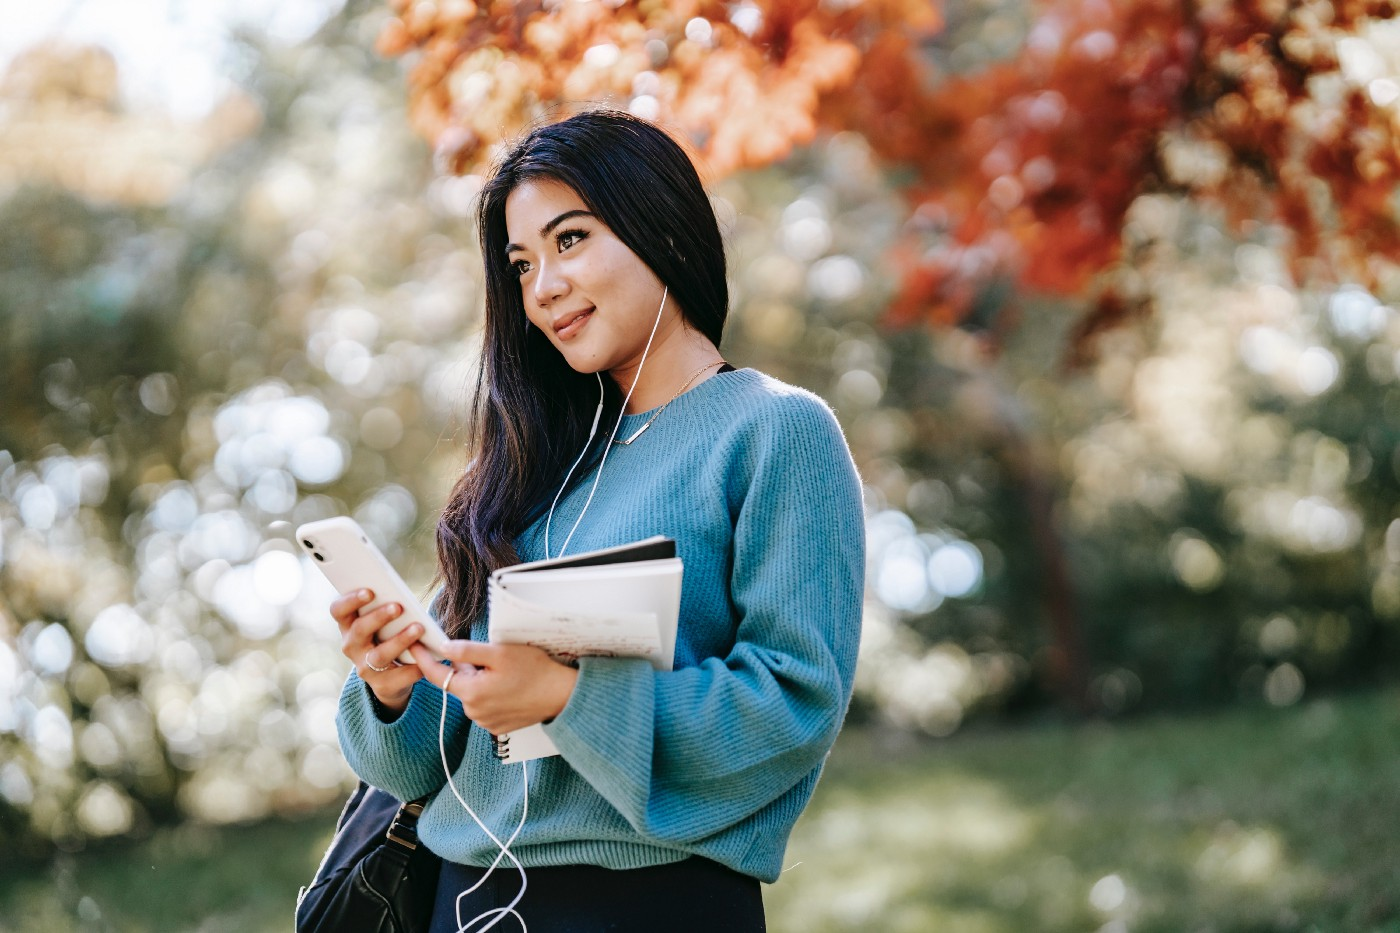 Woman using phone and headphones to audio journal outside